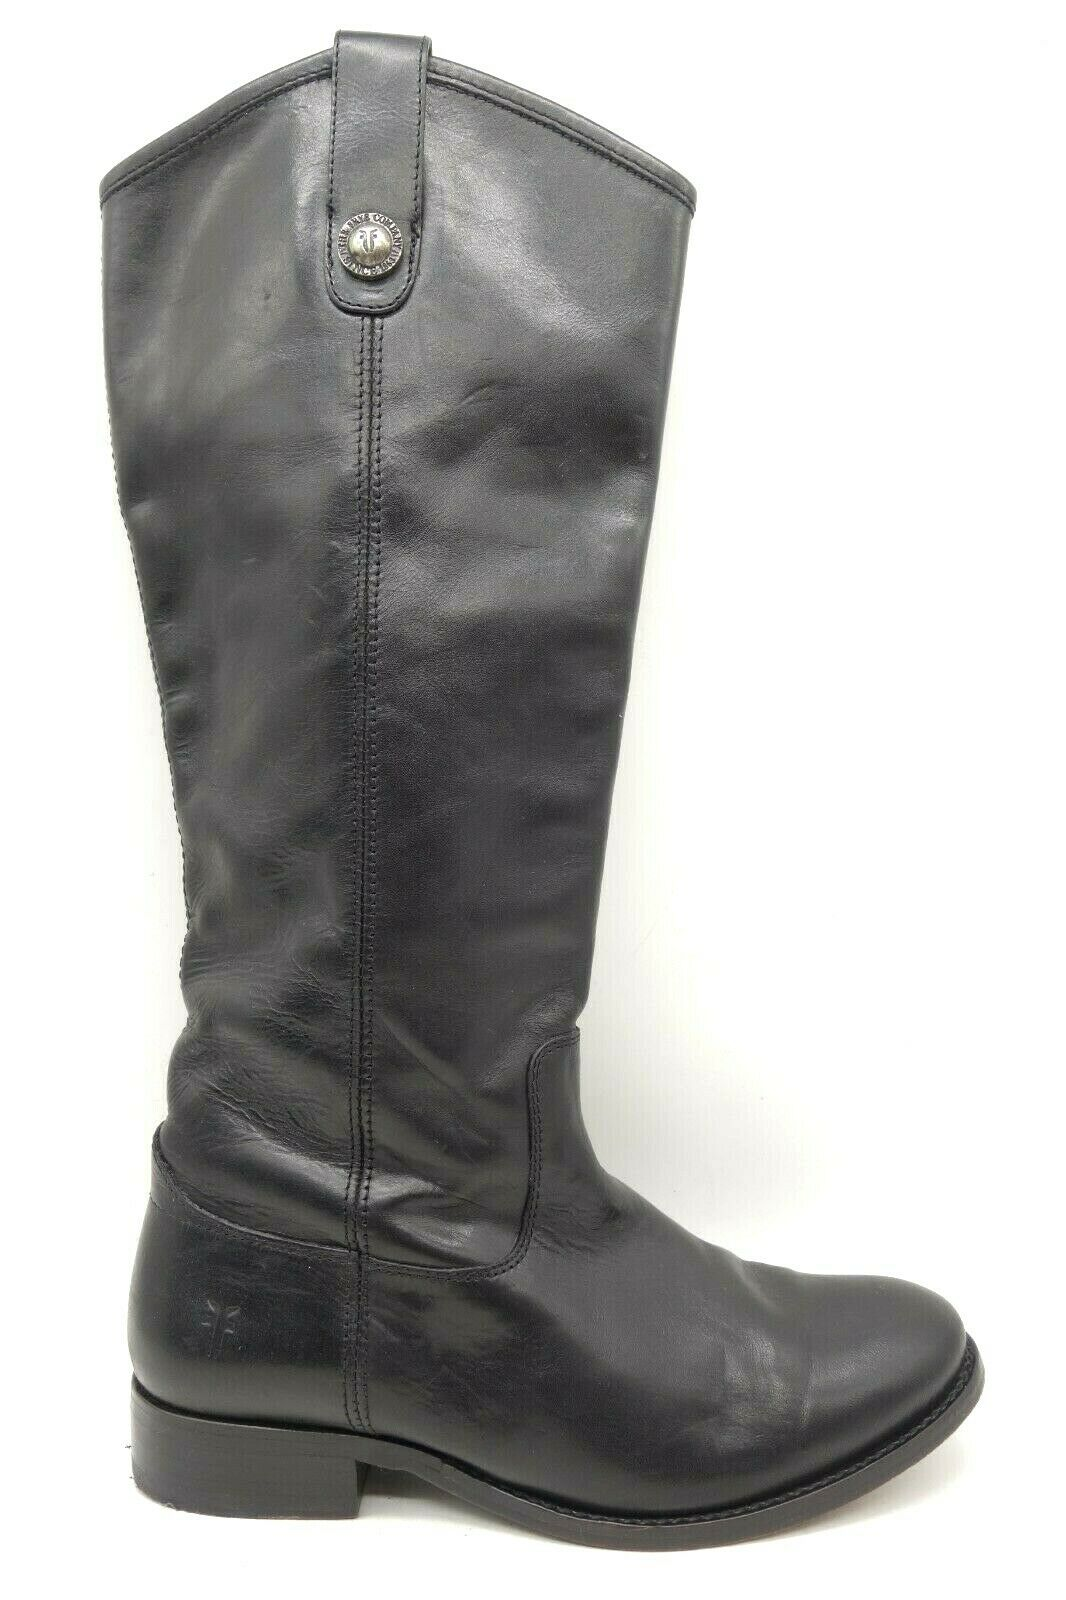 Frye Logo Melissa Button Black Leather Pull On Riding Boots Shoes Women's 6 B